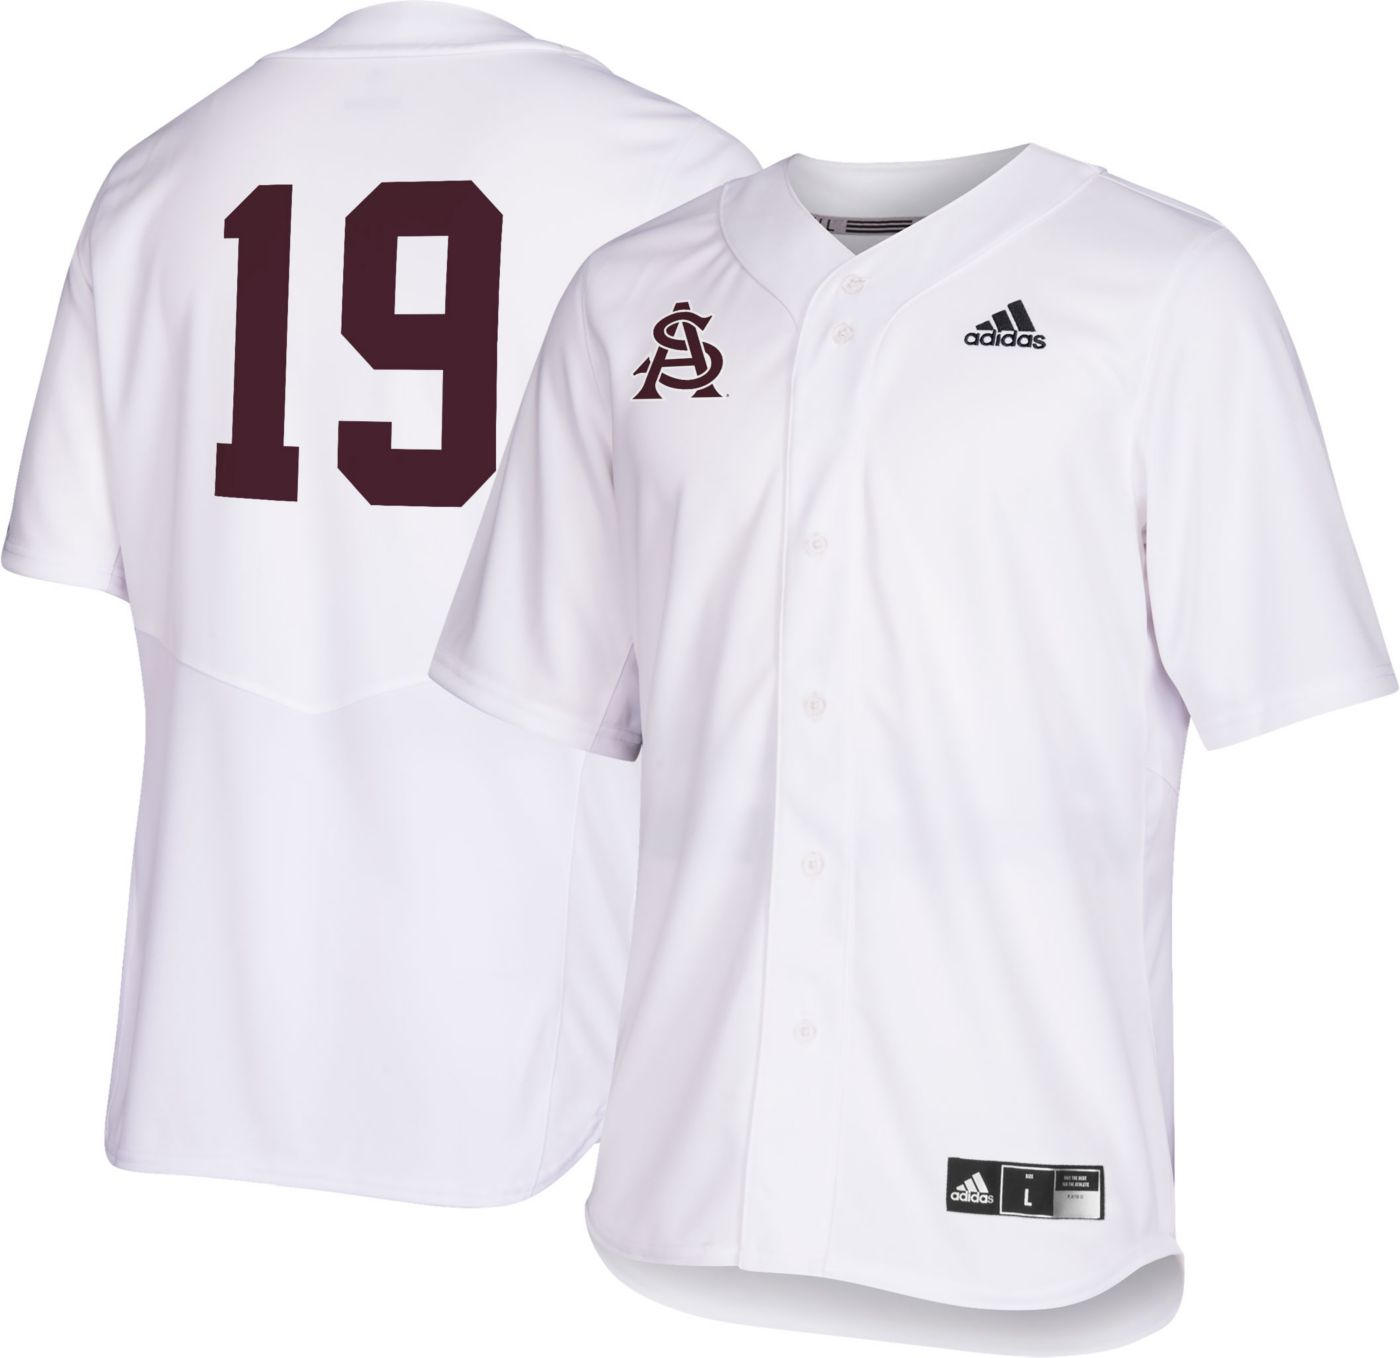 adidas Men's Arizona State Sun Devils #19 Replica Baseball White Jersey